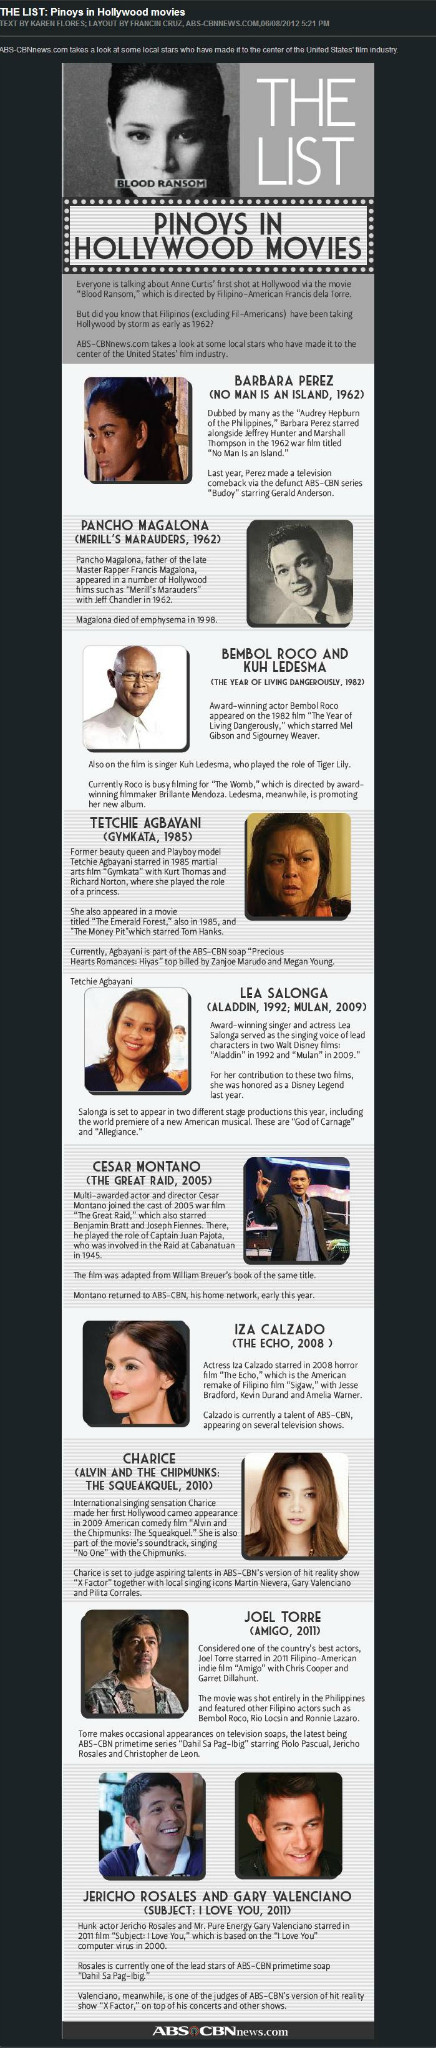 06/08/12 - ABS-CBN News - THE LIST: Pinoys in Hollywood Movies Pinoysinhollywoodmovies